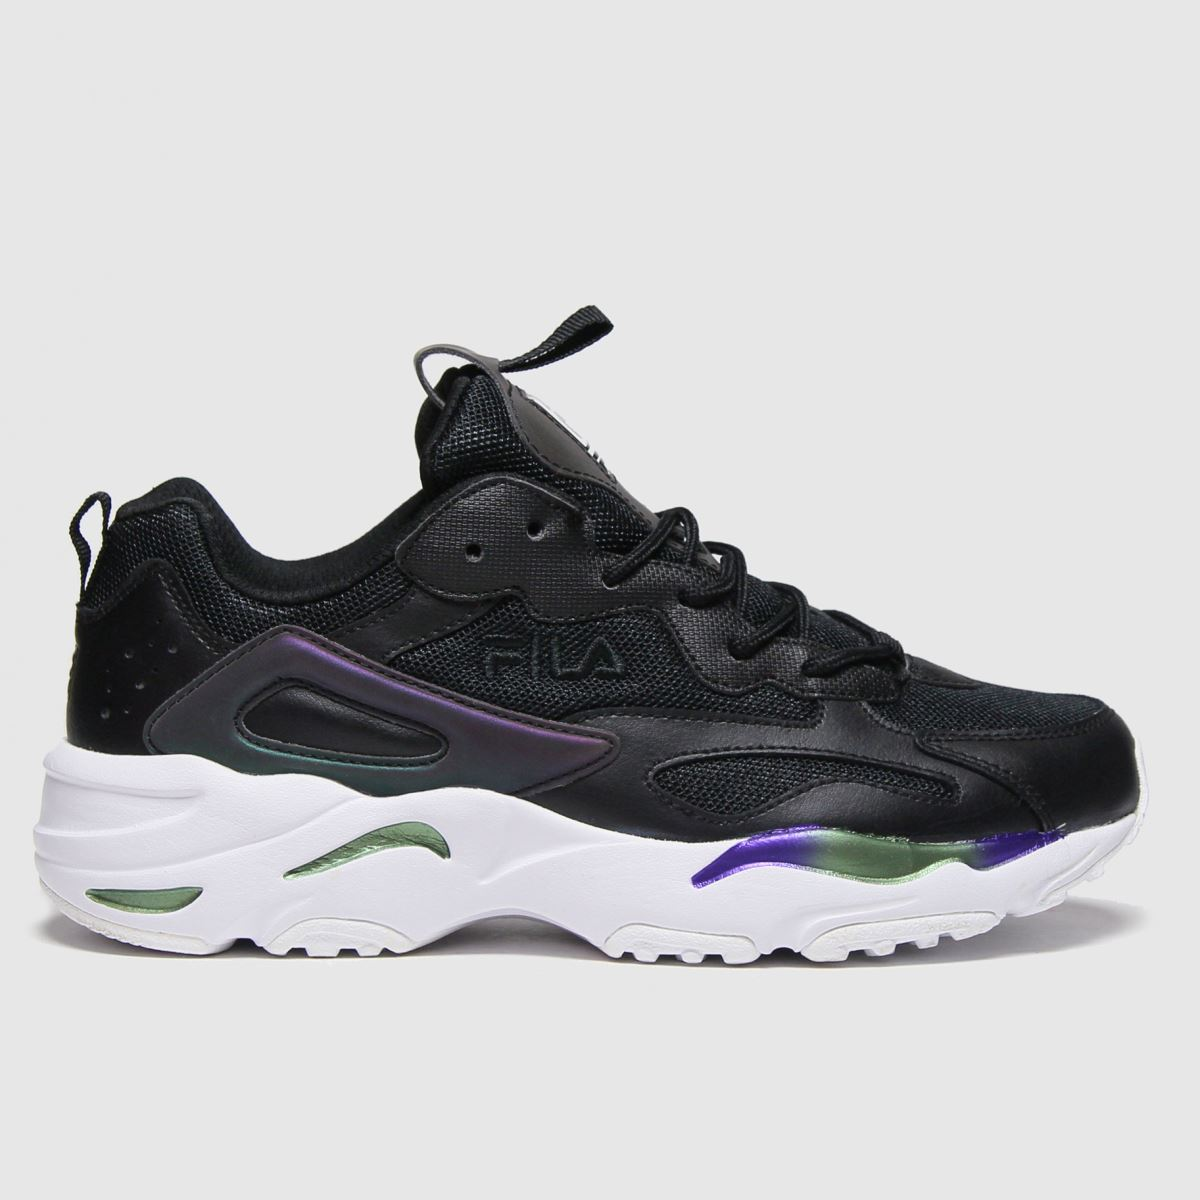 Fila Black & White Ray Tracer Trainers